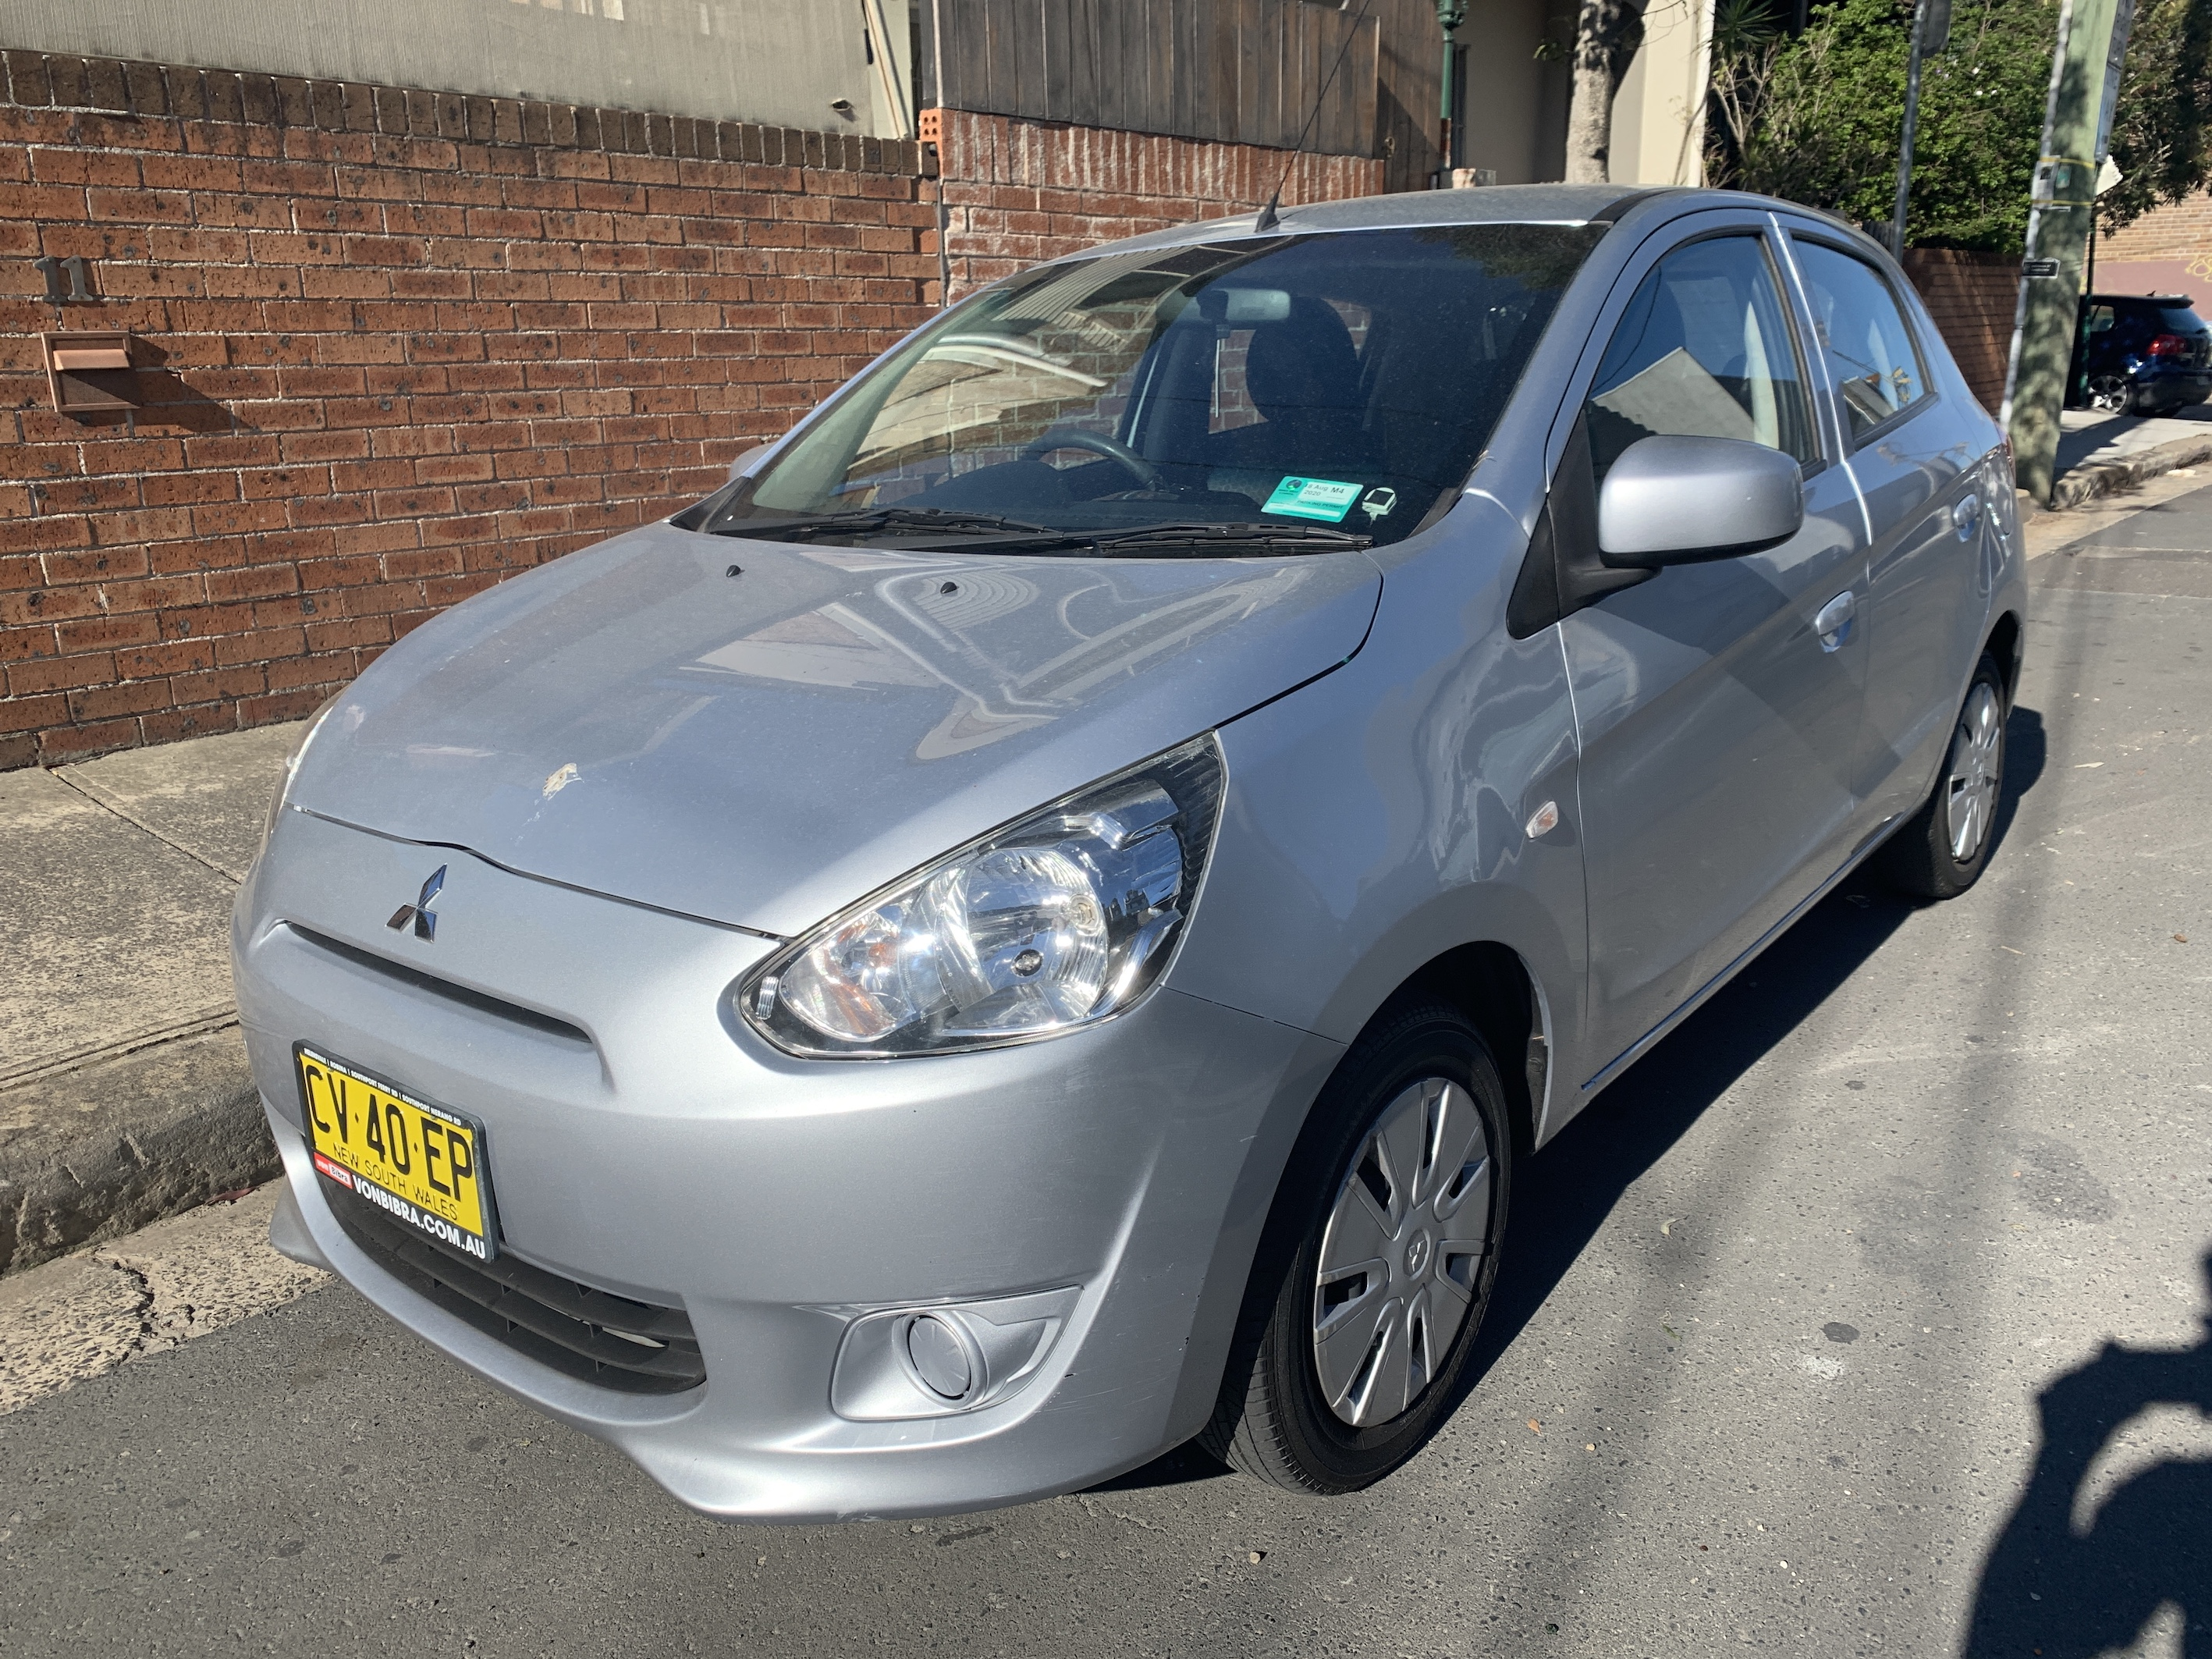 Picture of Jordan's 2014 Mitsubishi Mirage